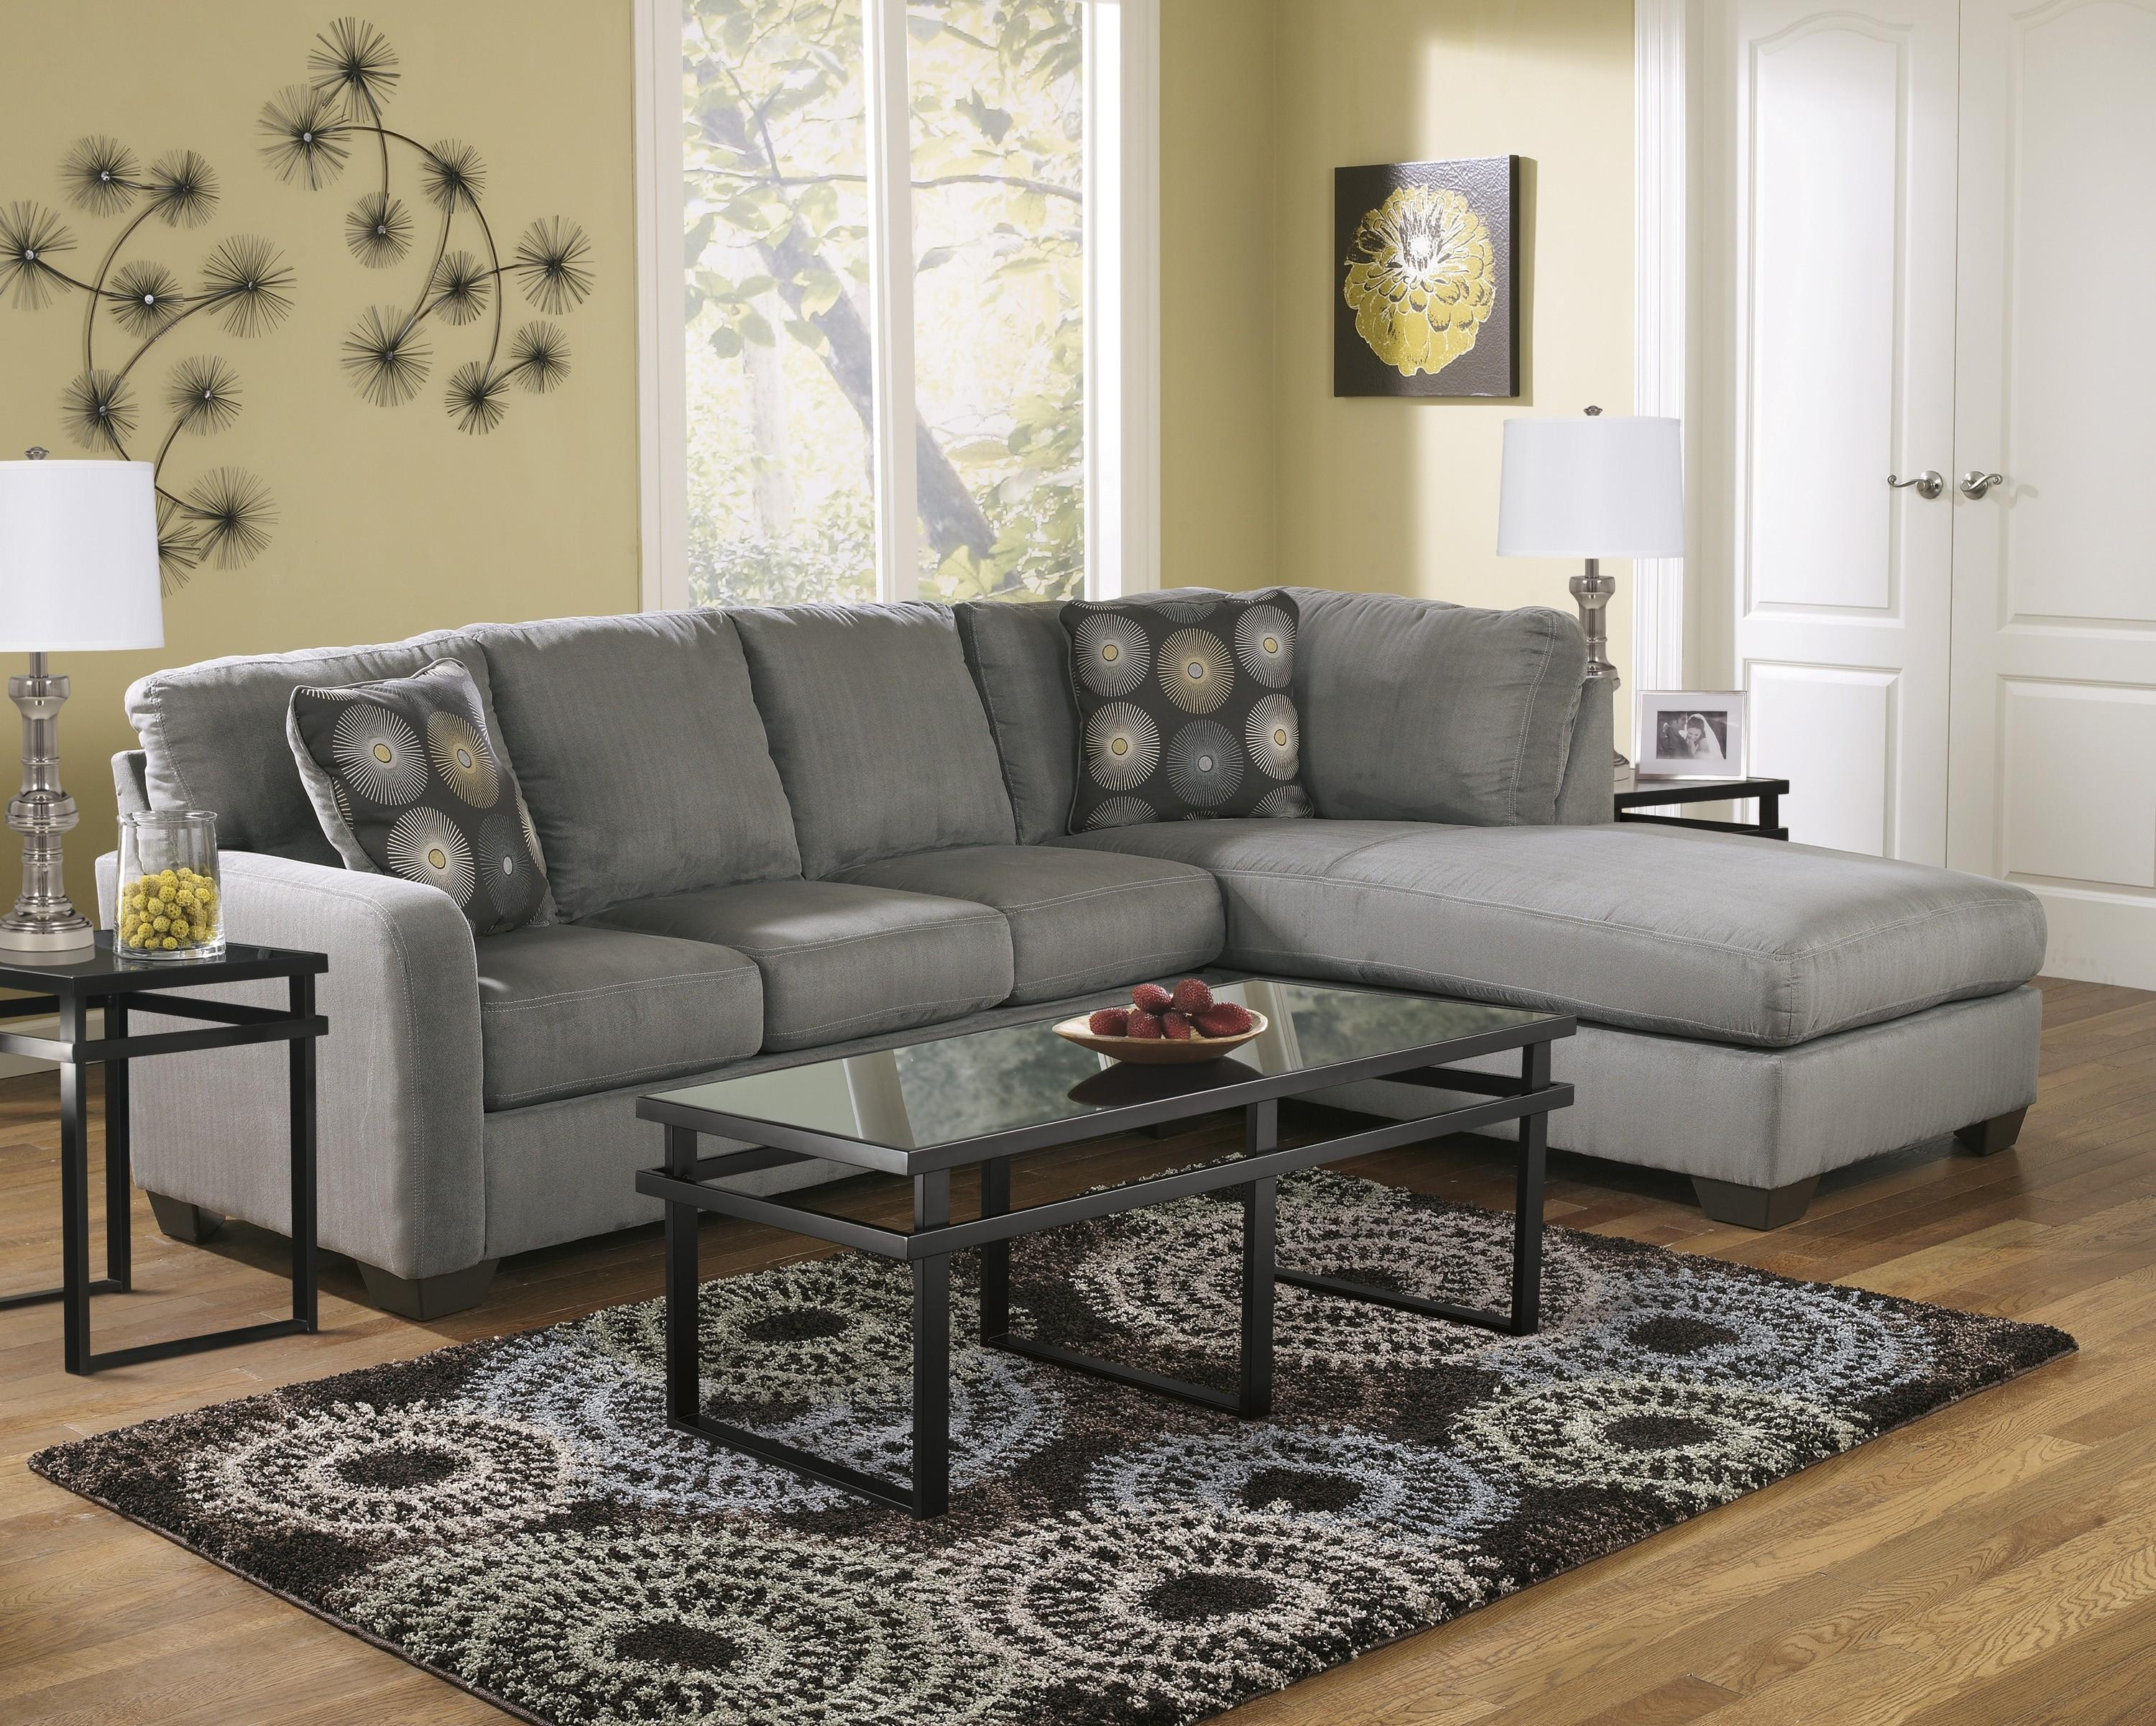 Zella Charcoal 2-Piece Sectional Sofa For $545.00 - Furnitureusa in Small 2 Piece Sectional Sofas